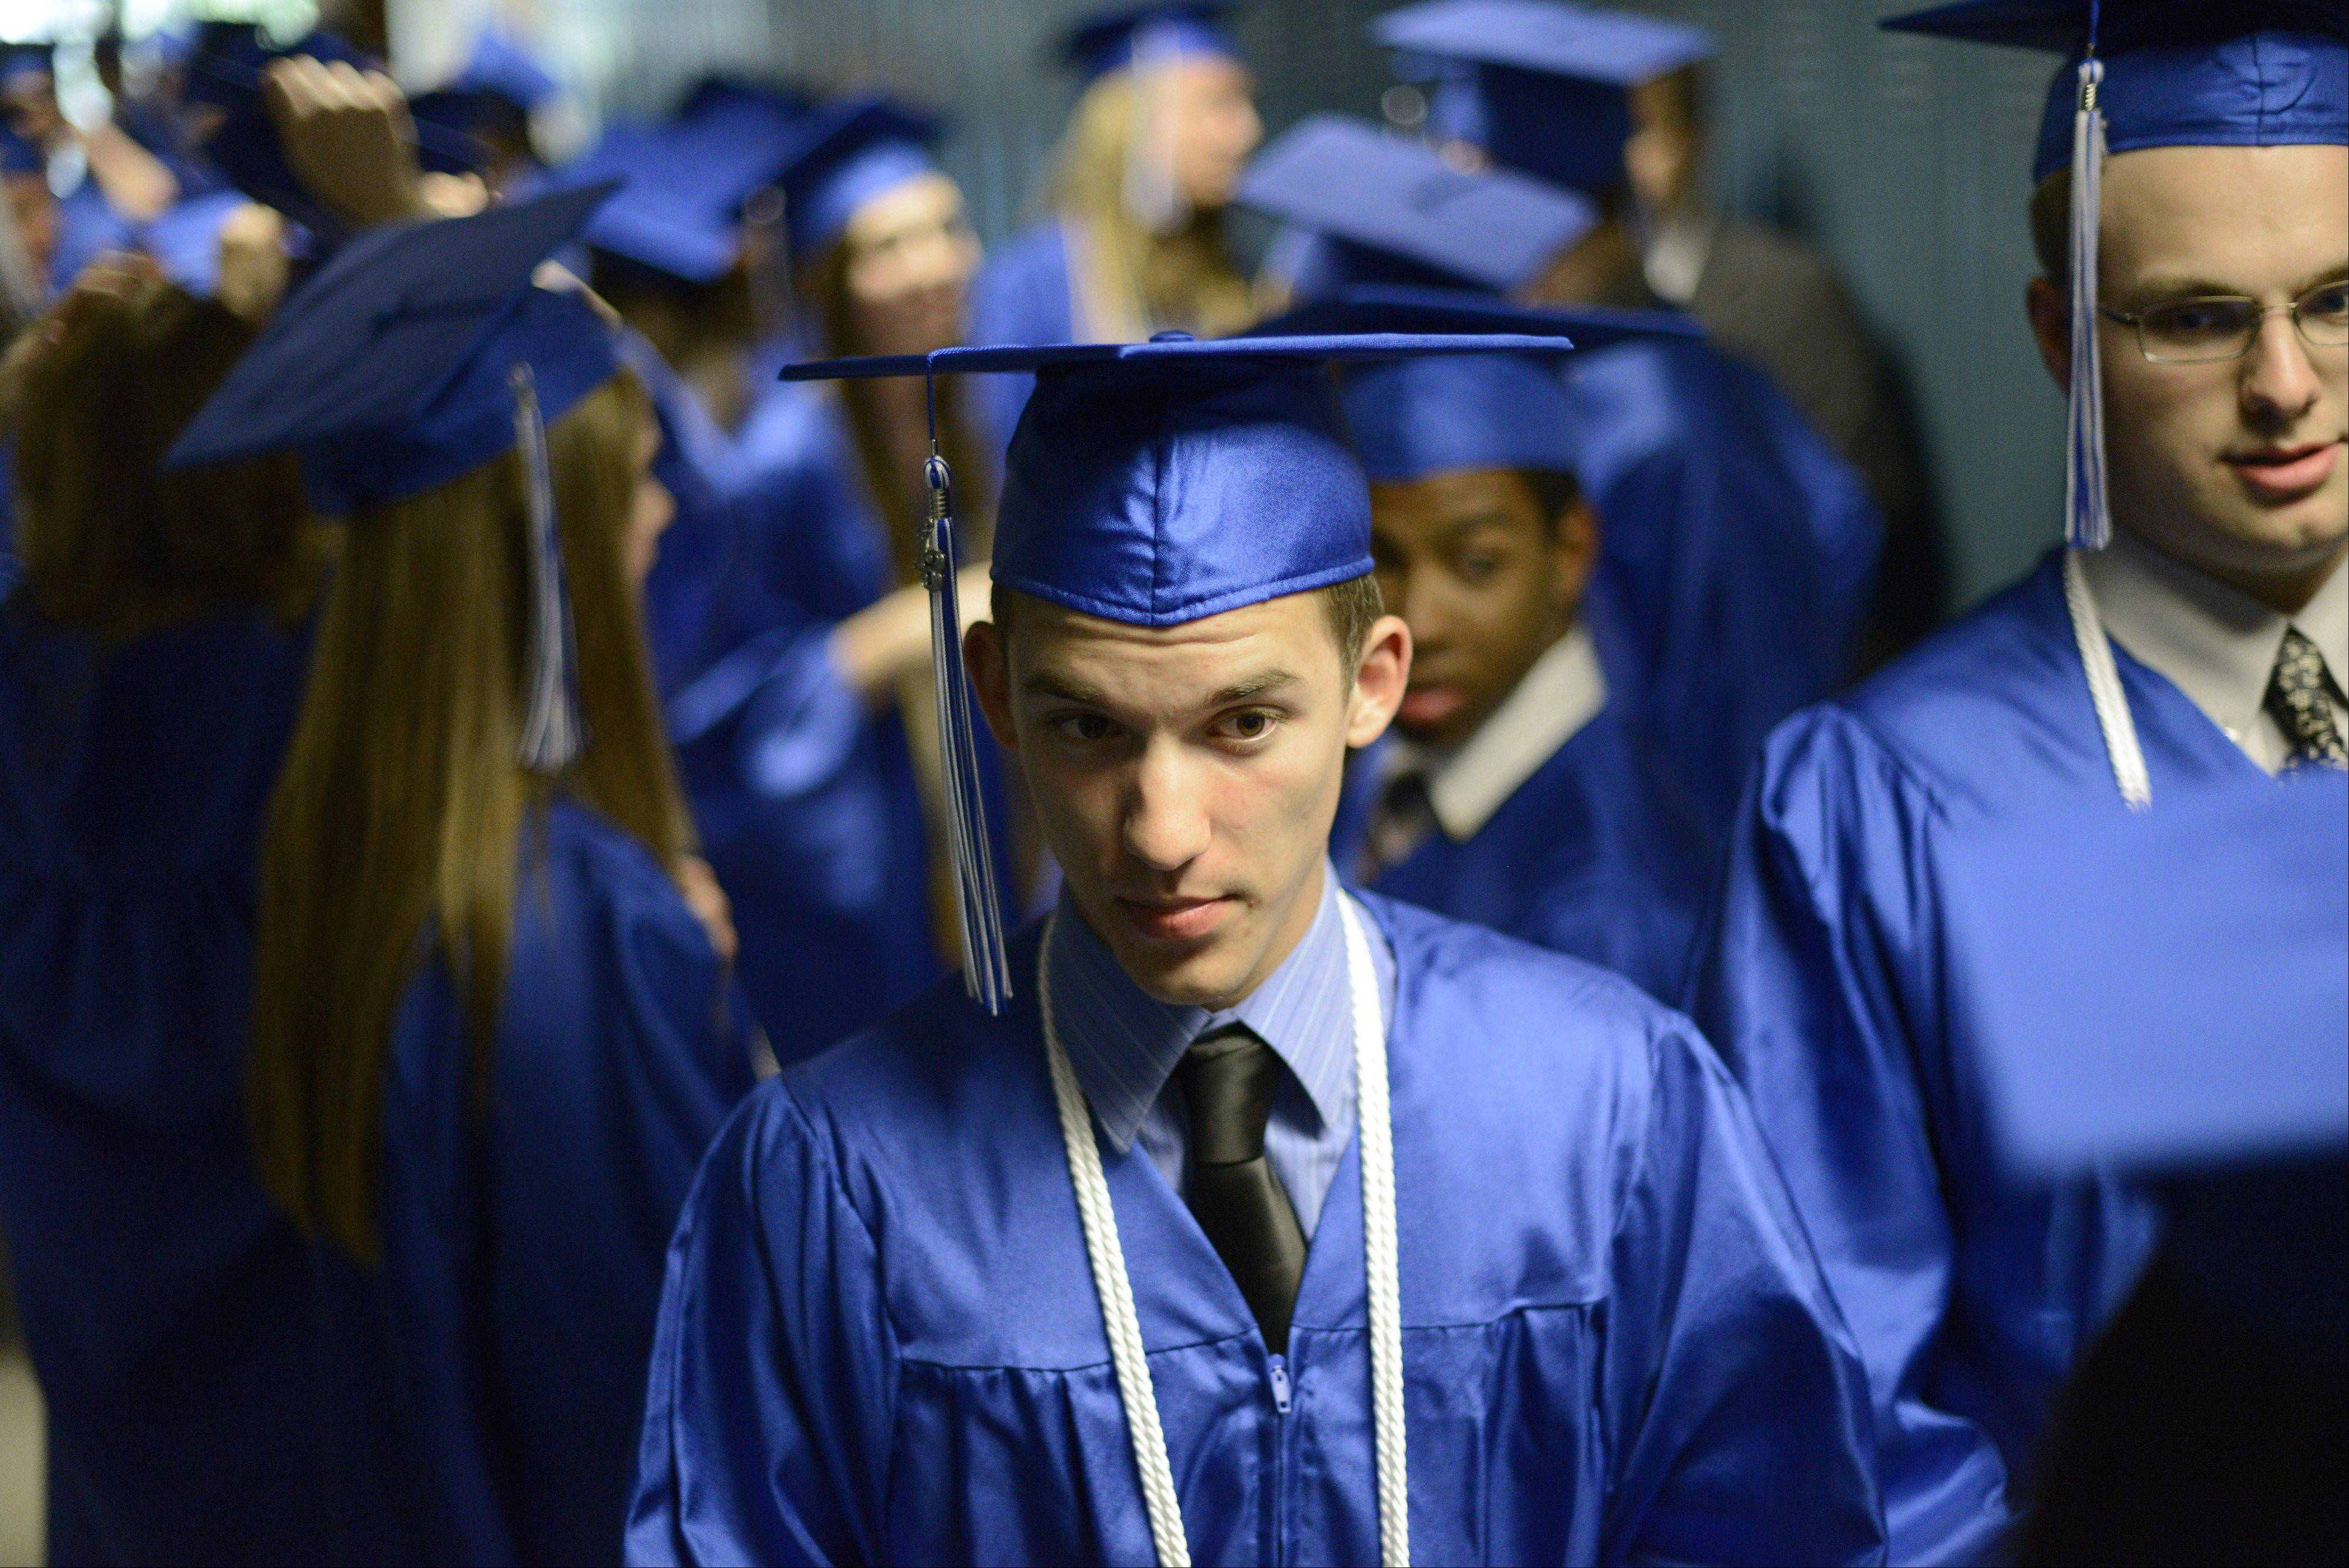 Jonathan Janik, 18, of Elgin waits for Westminster Christian High School's commencement ceremony to begin on Friday, May 24.